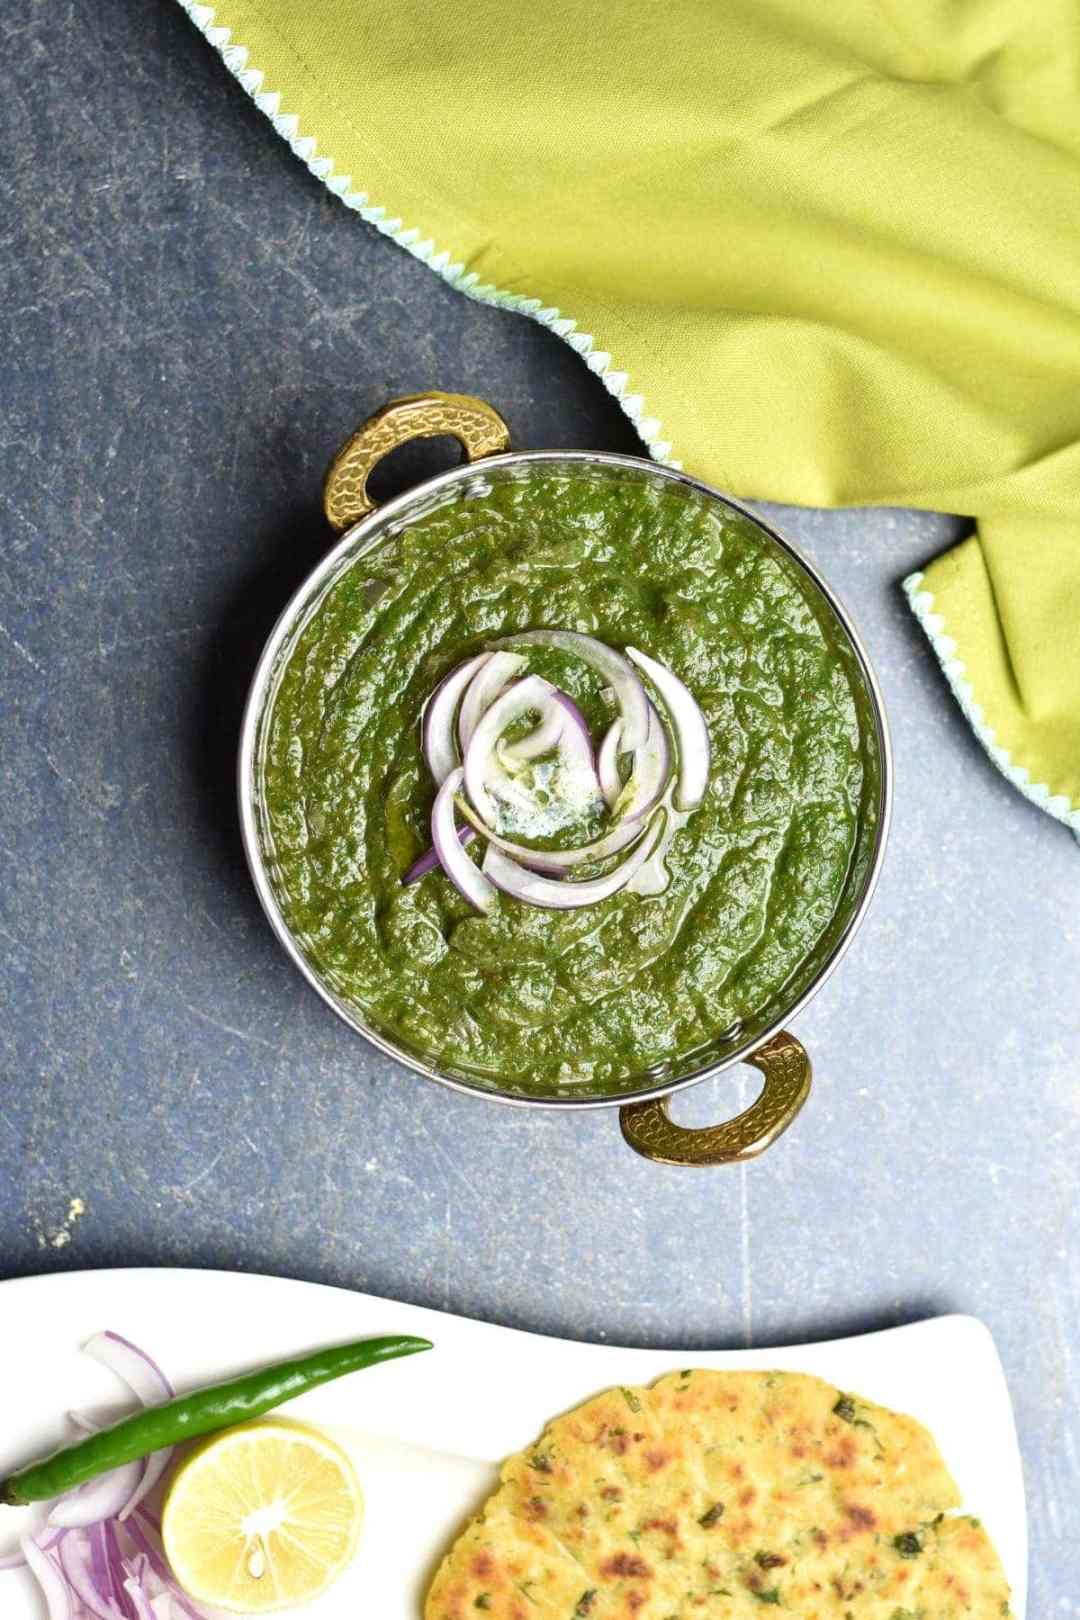 Sarson ka Saag, Indian spiced Mustard Greens by Spice Cravings. Sarson ka Saag is a leafy-vegetable preparation from Punjab, in the north of India. Traditionally a winter-time speciality, it is prepared with mustard greens & spinach, seasoned with onions, ginger, garlic, & warm Indian spices. It is usually served with makki ki roti, which is a cornmeal flatbread. #cooking #food #recipe #recipes #foodphotography #foodblogger #yummy #delicious #foodie